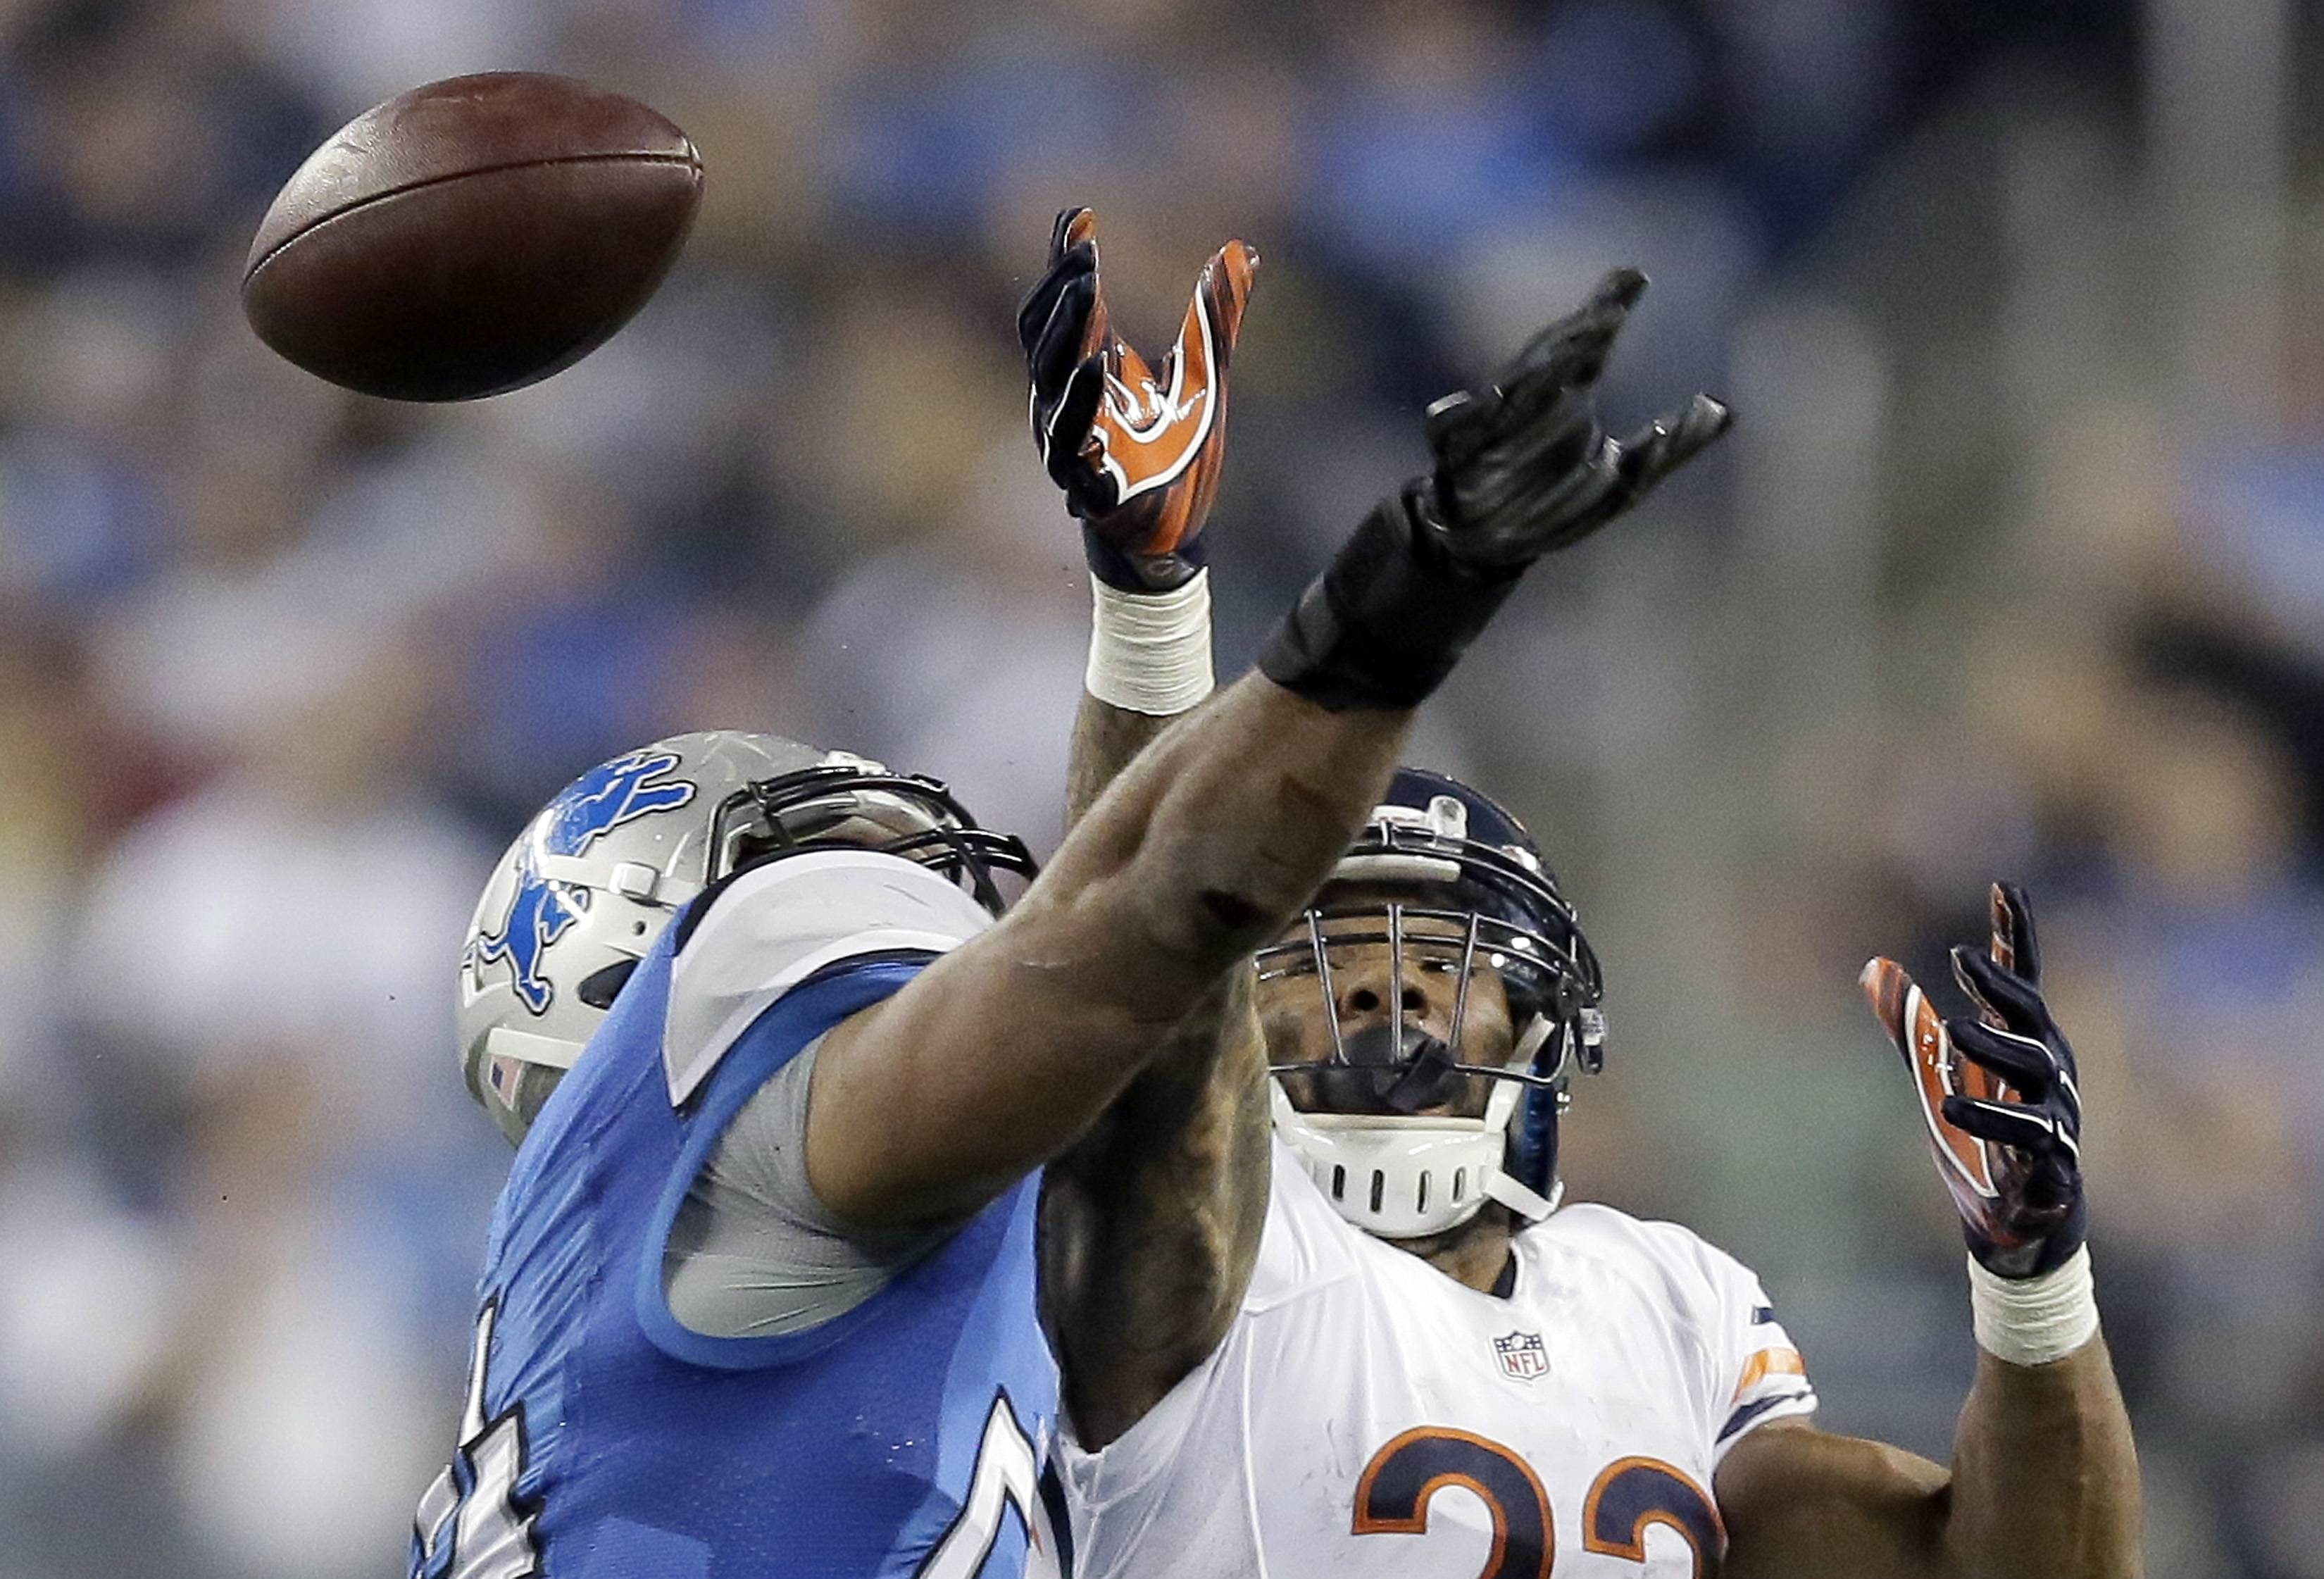 Lions linebacker DeAndre Levy deflects a pass intended for the Bears' Matt Forte during the second half Sunday. The Bears ran the ball only eight times vs. 51 pass plays, and Forte had 5 carries for just 6 yards.